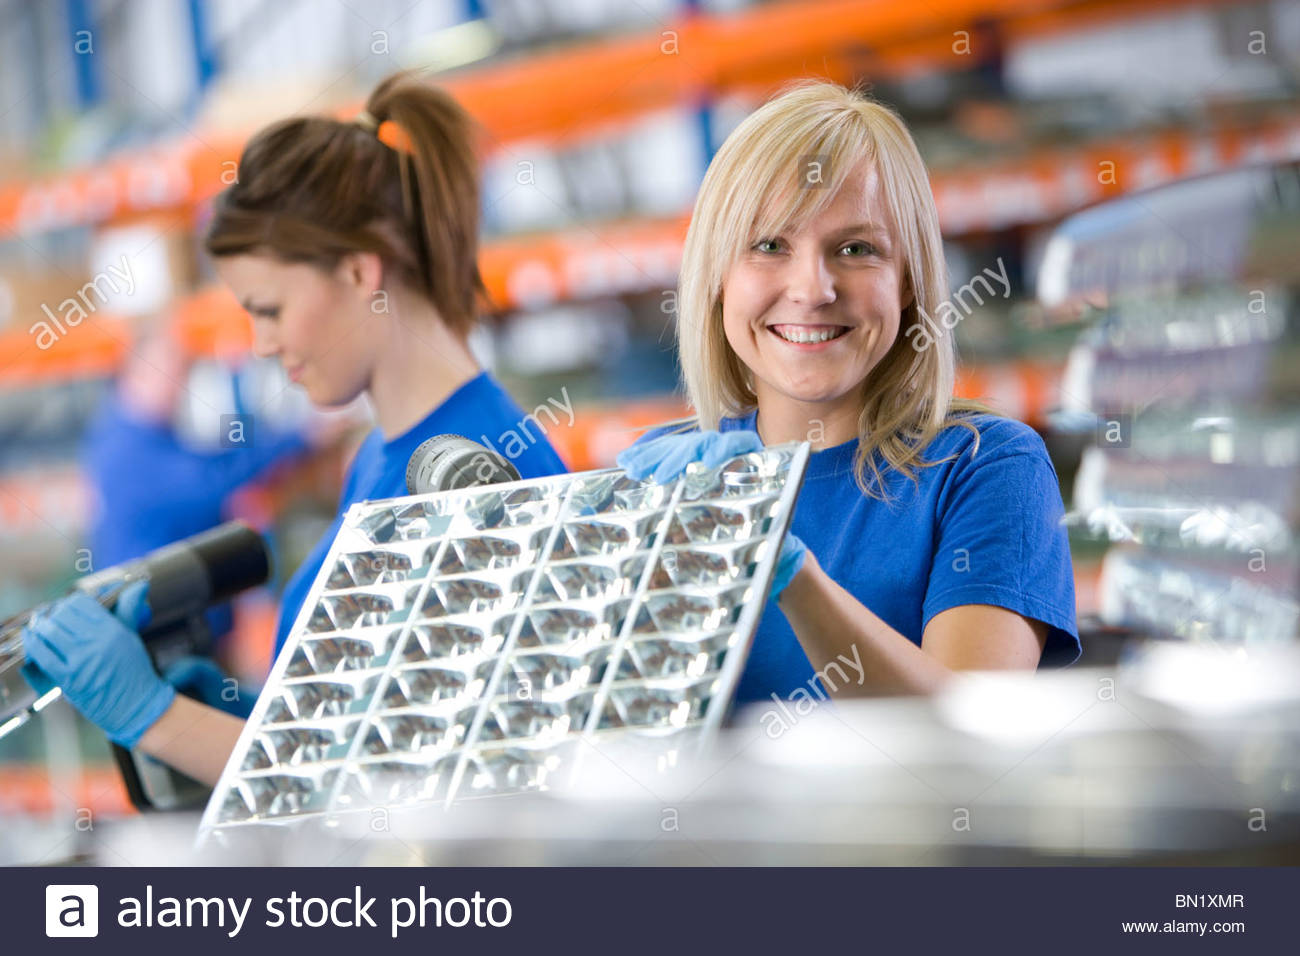 Portrait of smiling worker holding aluminium light fittings in factory - Stock Image